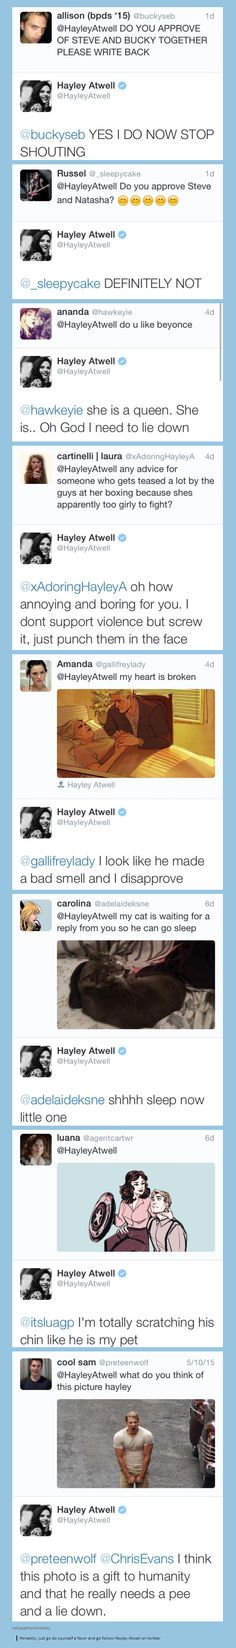 Hayley Atwell is a gift to the world